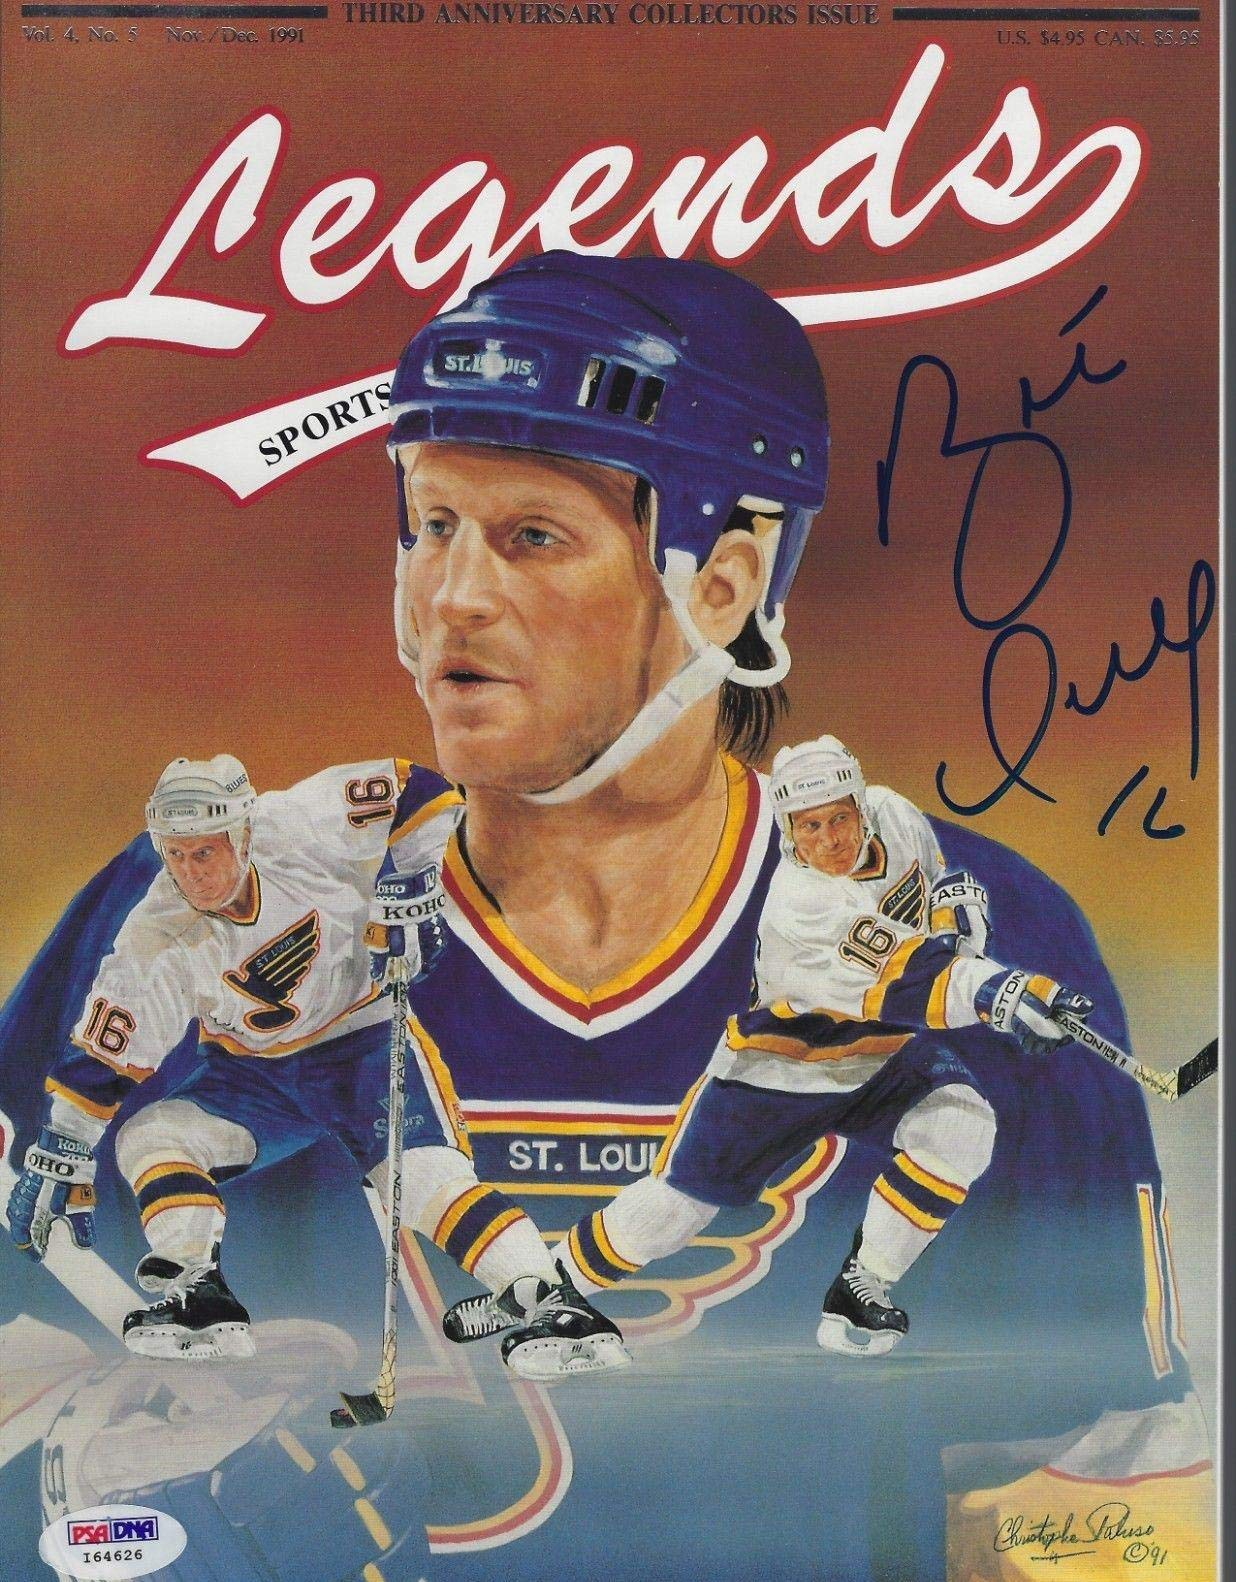 BRETT HULL (Blues) Signed LEGENDS Magazine with COA (NO Label) PSA/DNA Certified Autographed NHL Magazines